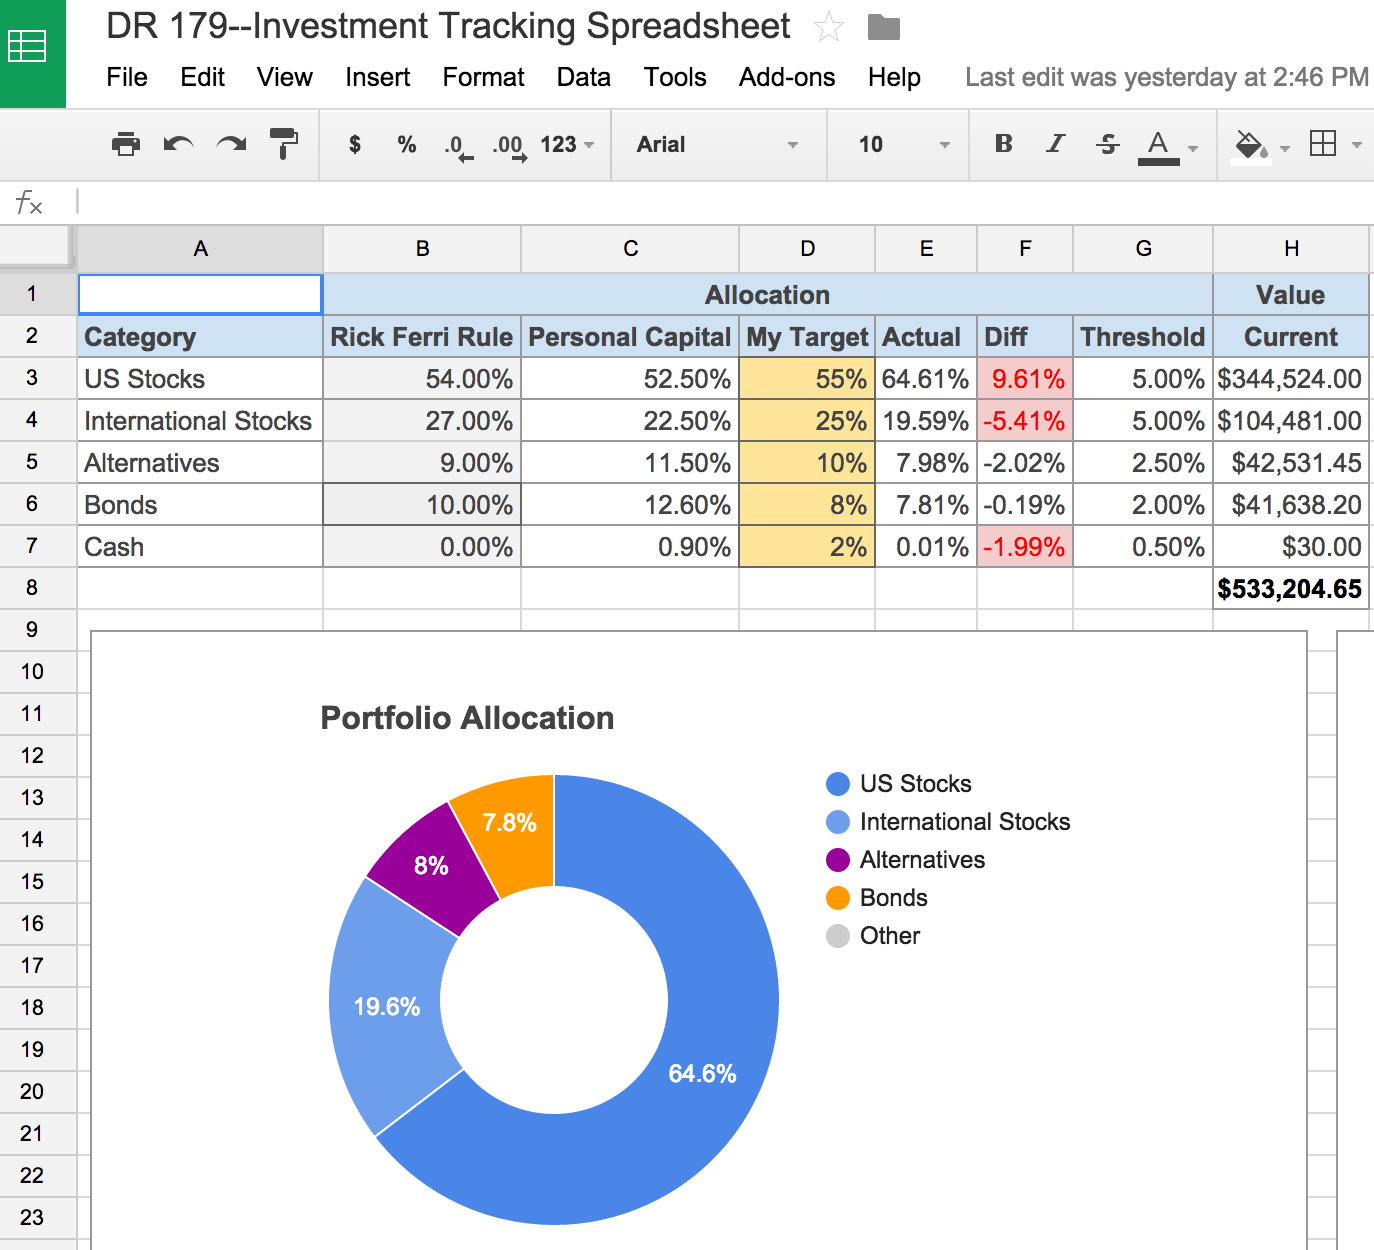 Free Investment Tracking Spreadsheet Excel Inside Investment Tracking Spreadsheet Excel In Spreadsheet